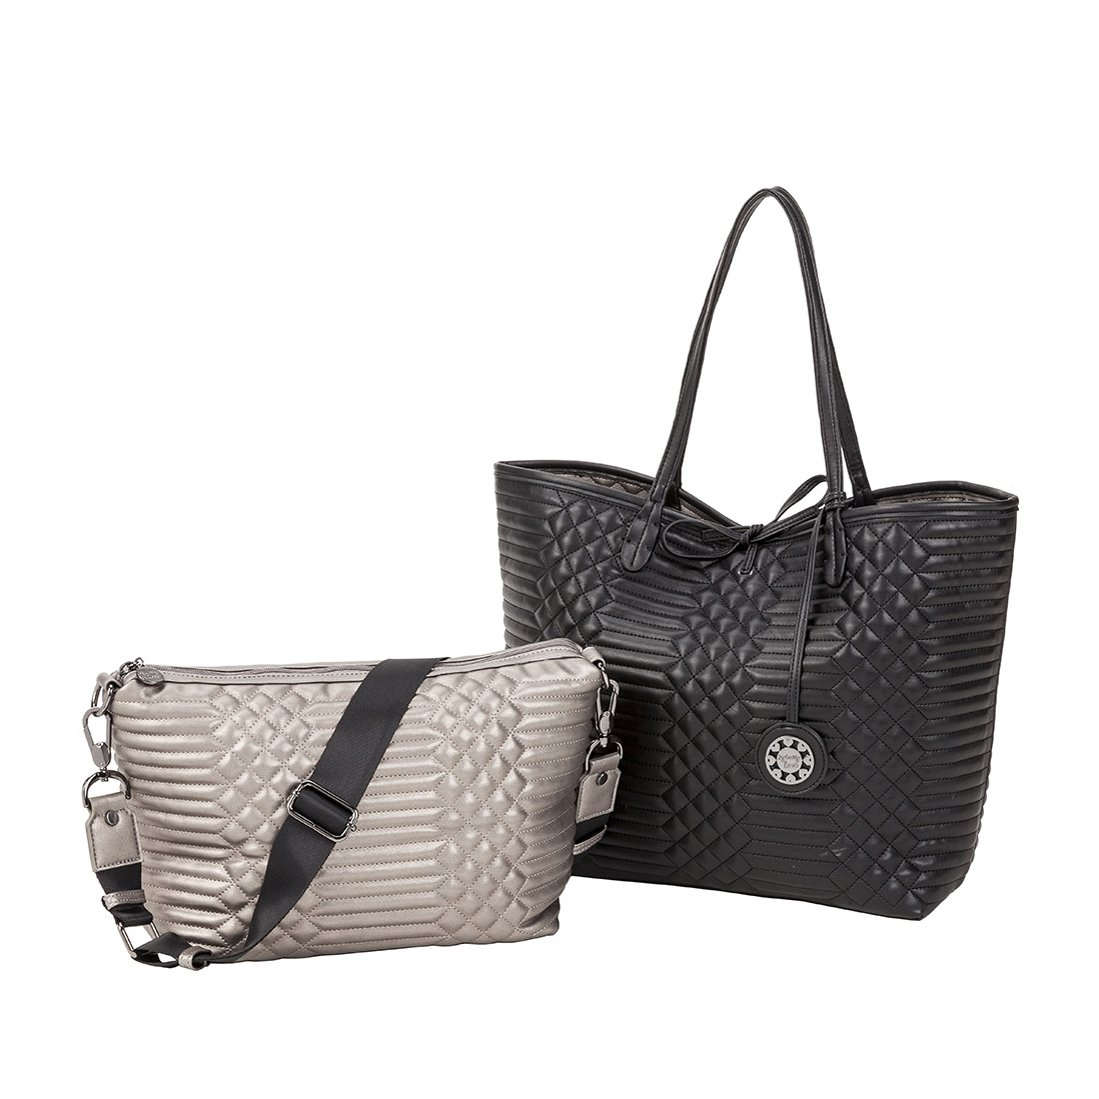 Sydney Love Qulilted Reversible Tote & Crossbody Set, Black/Pewter